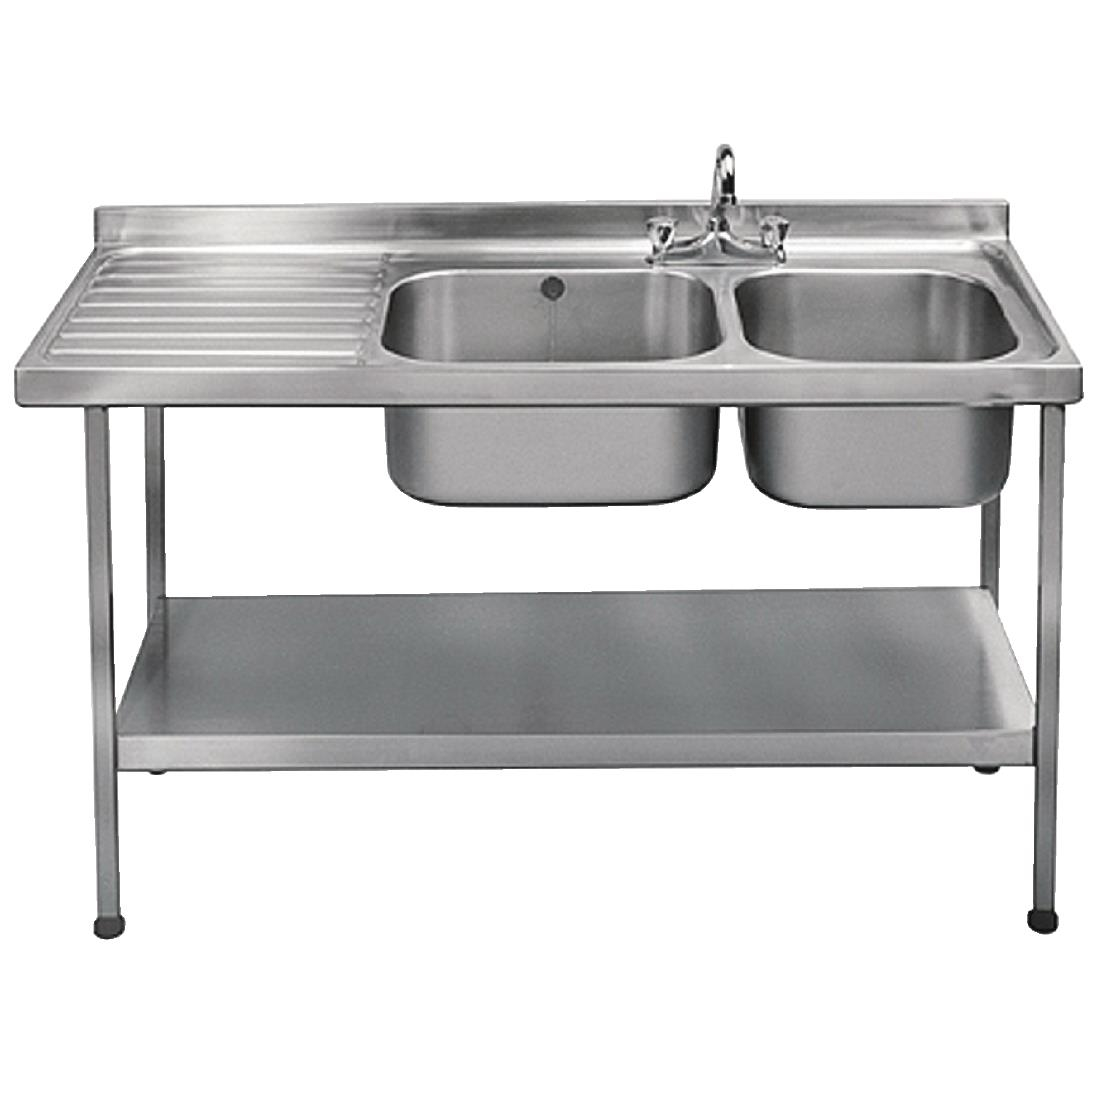 Image of Franke Sissons Self Assembly Stainless Steel Double Sink Left Hand Drainer 1500x600mm